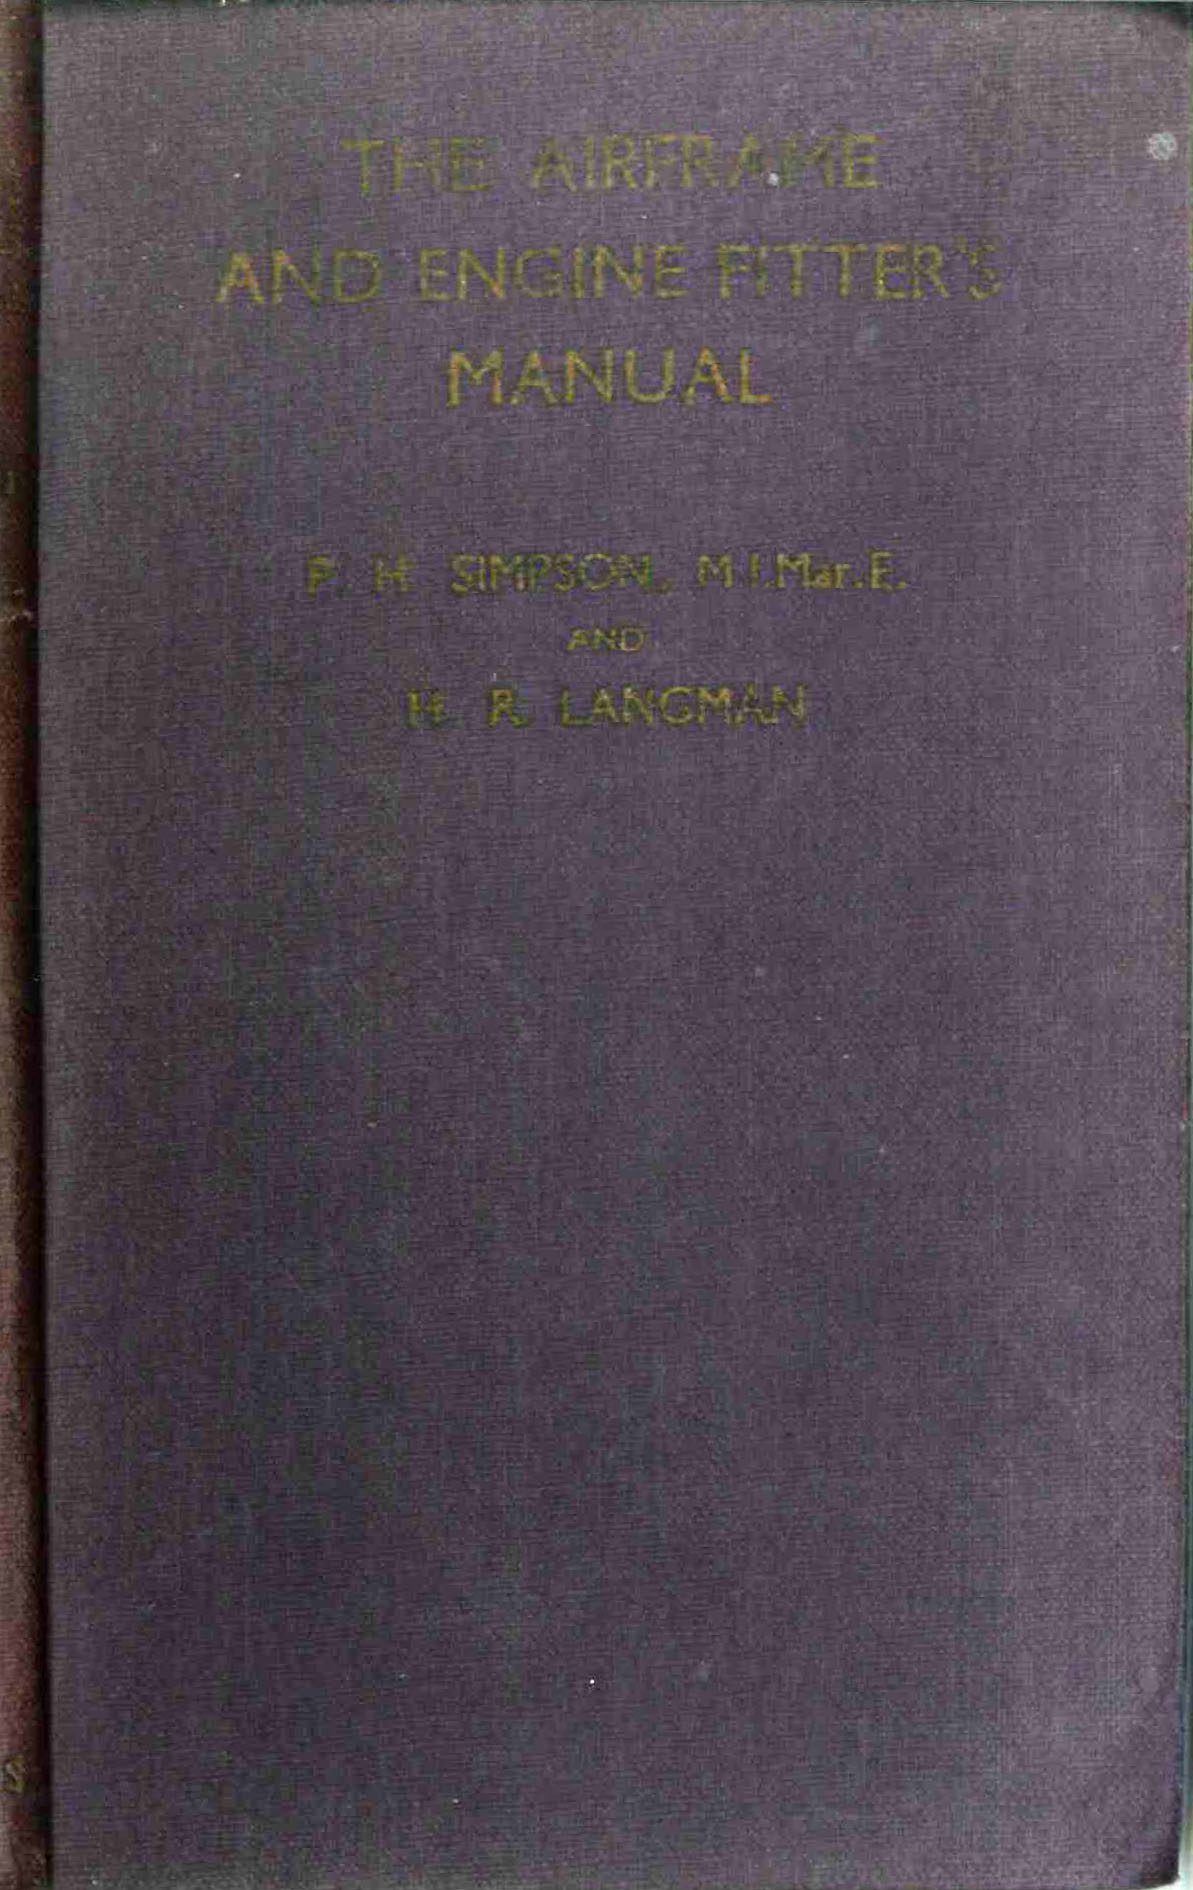 The Airframe and Engine Fitter's Manual